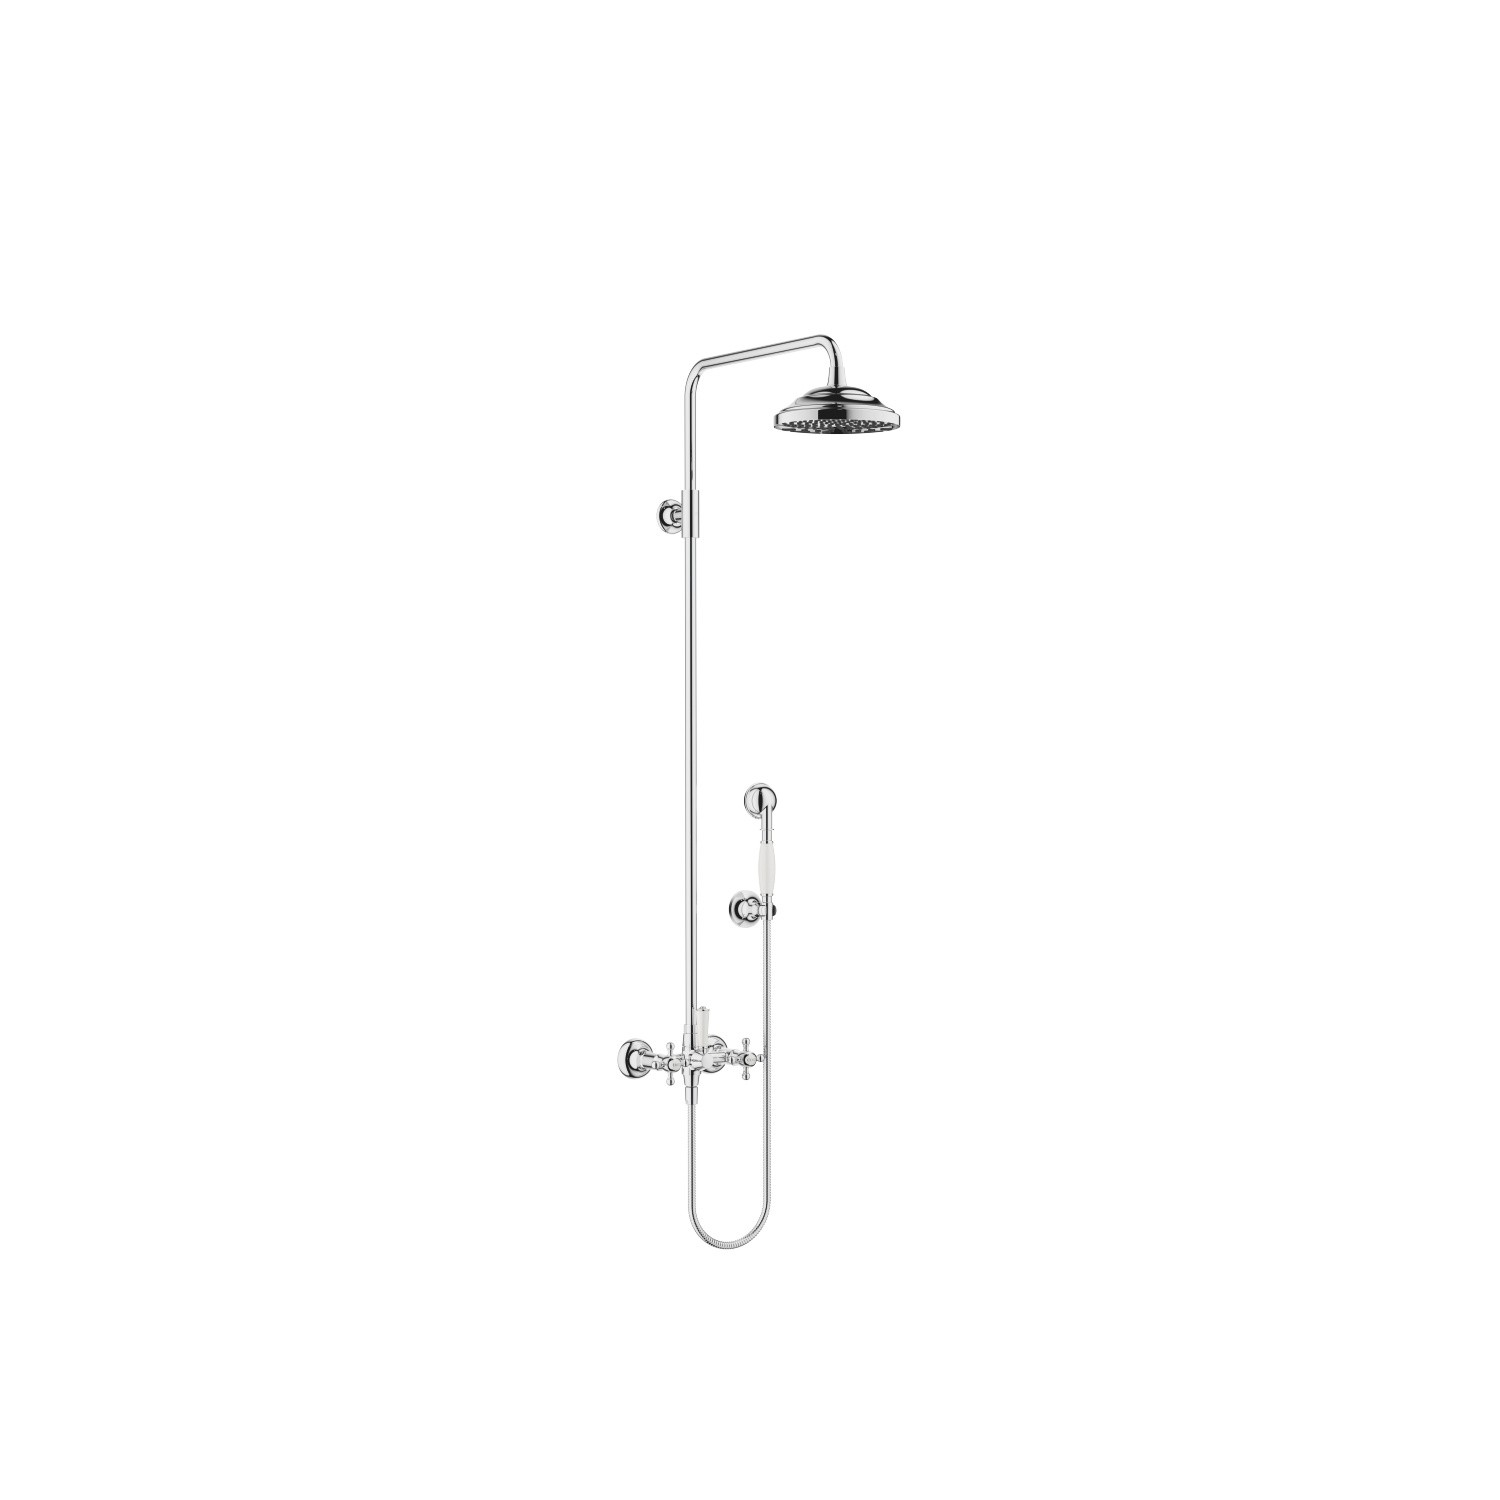 DORNBRACHT 26601360-0010 MADISON WALL MOUNT TWO CROSS HANDLES SHOWER MIXER WITH RAINHEAD AND HAND SHOWER SET